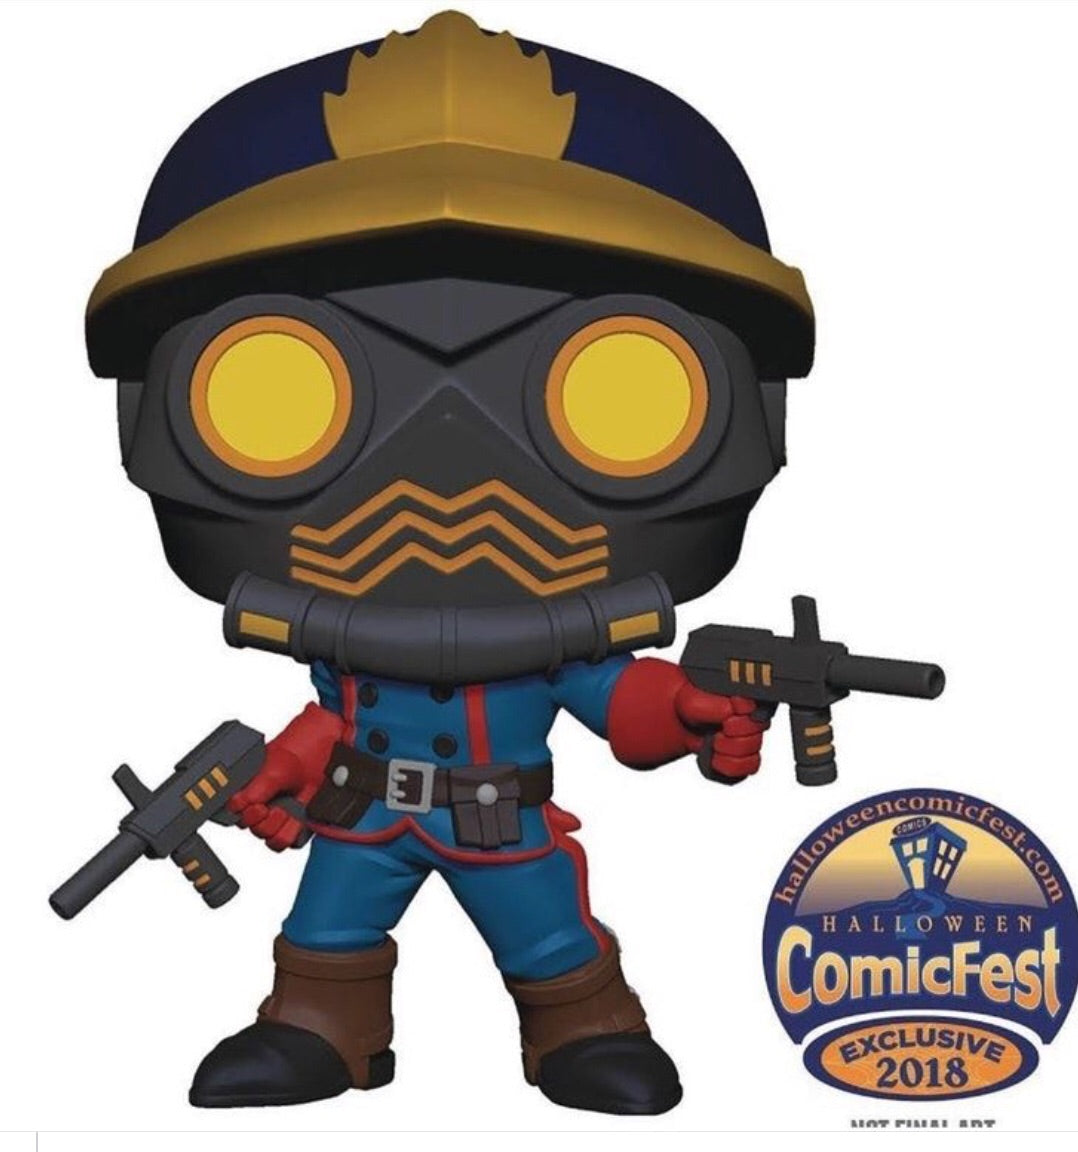 Halloween Comicfest Exclusive Classic Starlord